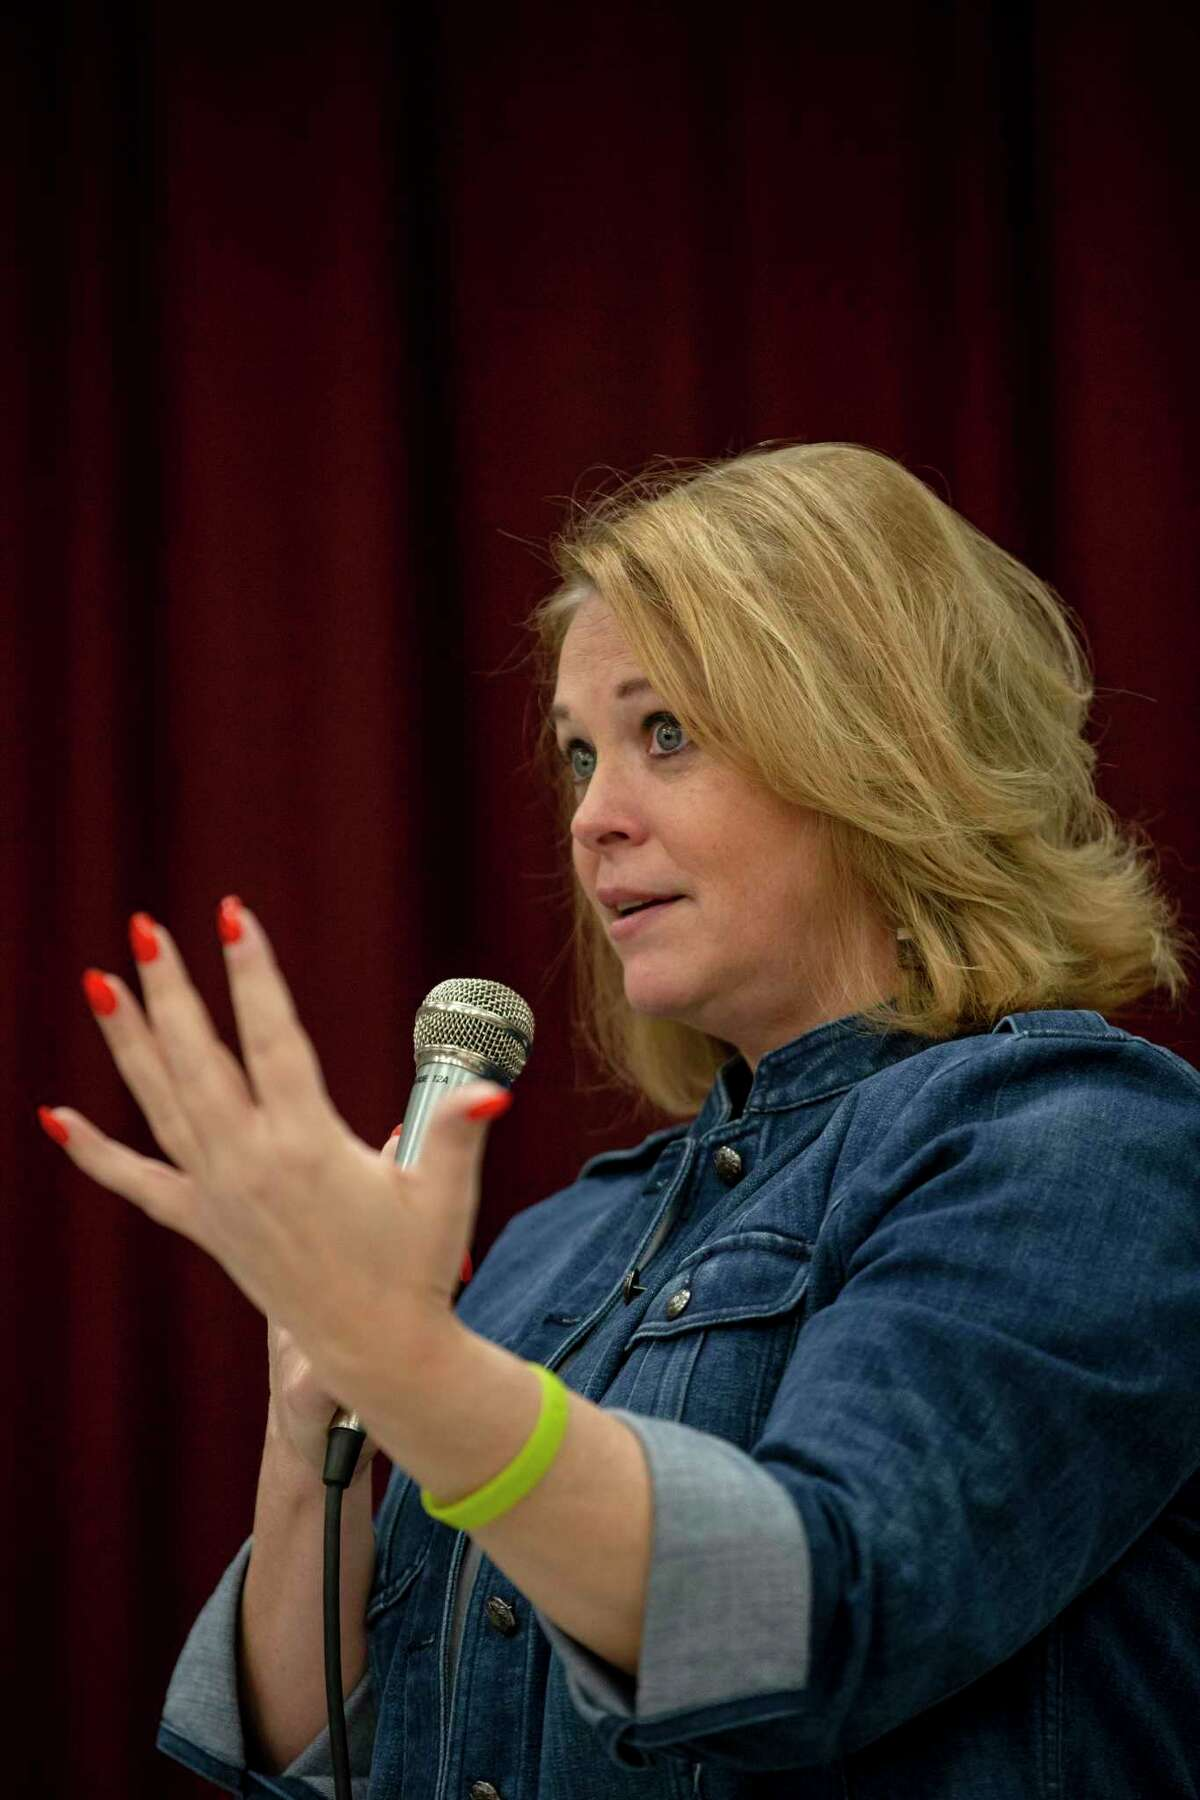 Director of Metro Health Dawn Emerick addresses community concerns about the new coronavirus, called COVID-19 during a District 4 forum on public safety held at John Glenn Elementary School in San Antonio on Feb. 27, 2020.